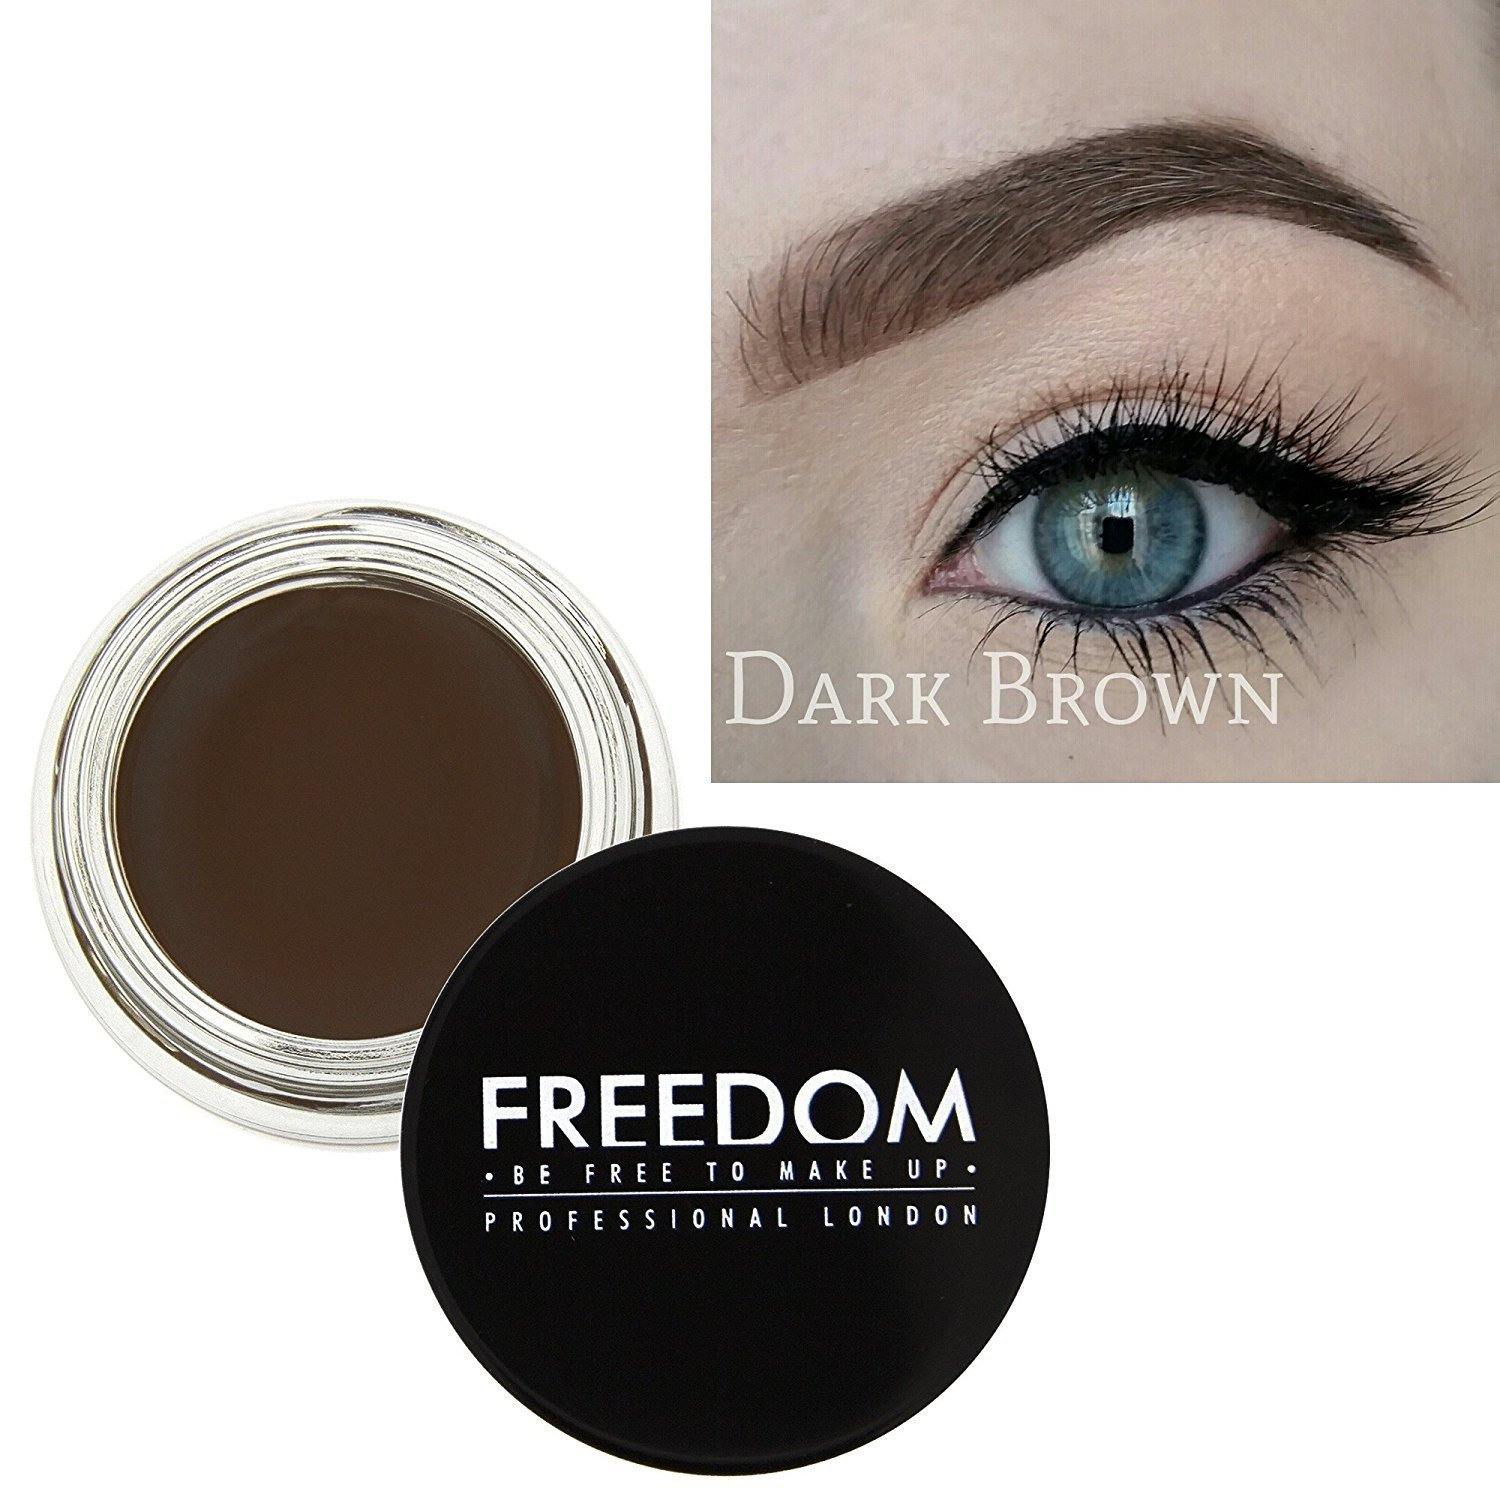 Freedom Makeup Eyebrow Definition Brow Pomade Dark Brown Freedom Makeup London